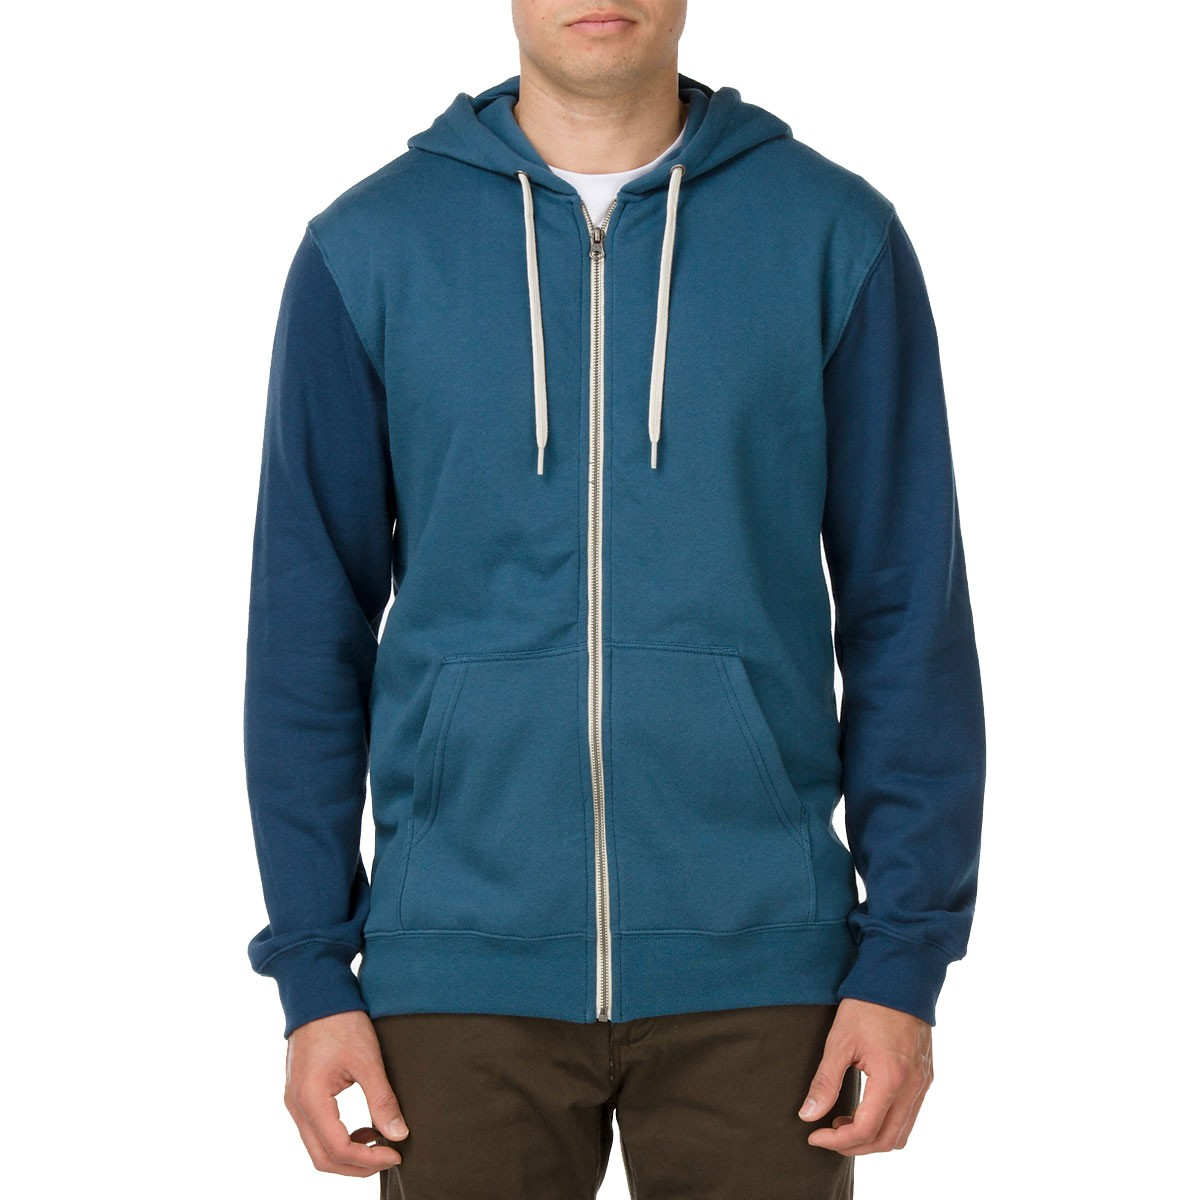 Vans Core Basics Colorblock Zip Hoodie - Indian Teal/Ice Water